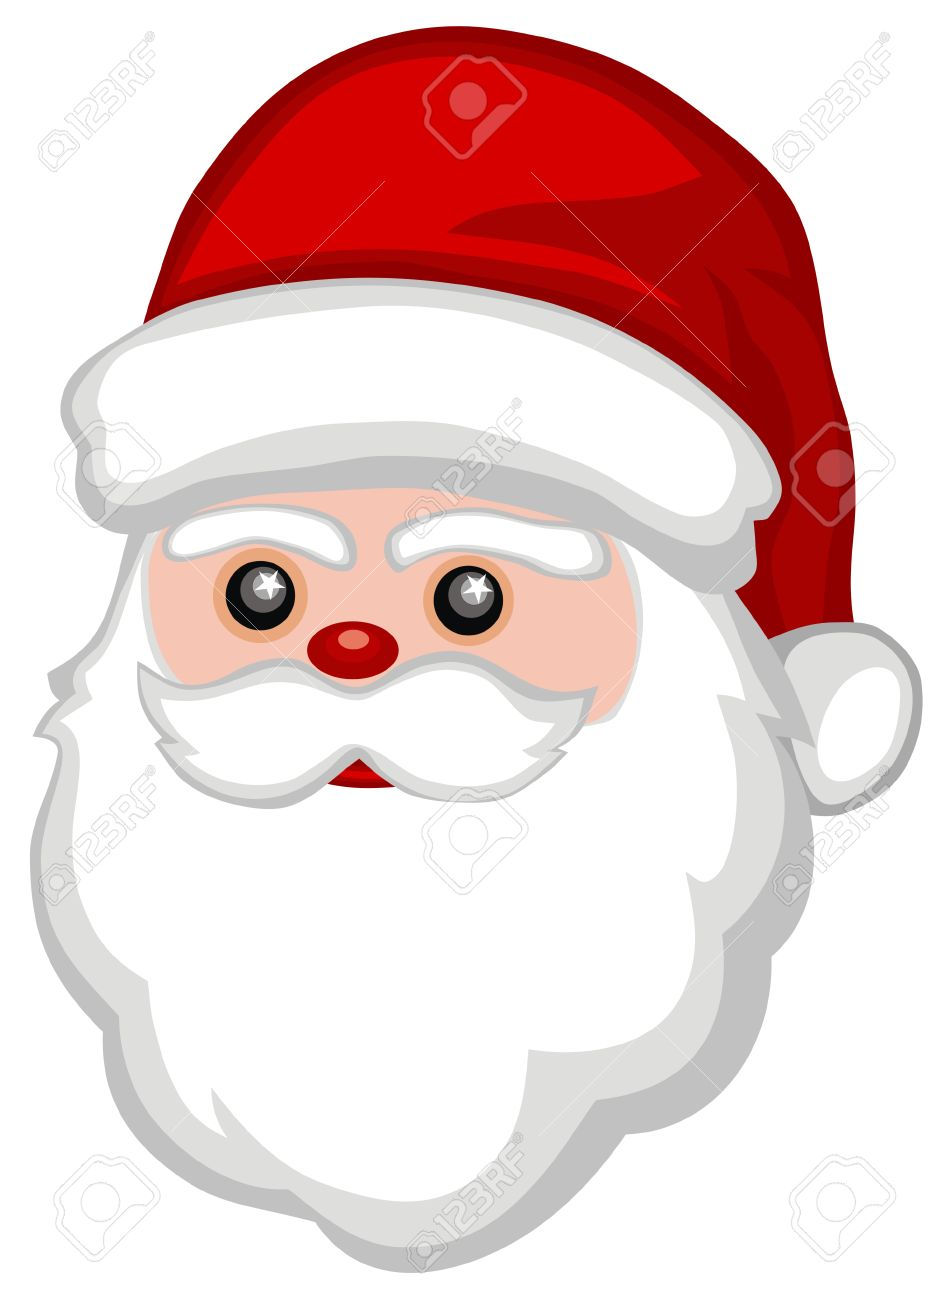 943x1300 Santa Claus Face. Stock Photo Vector Illustration Santa Claus